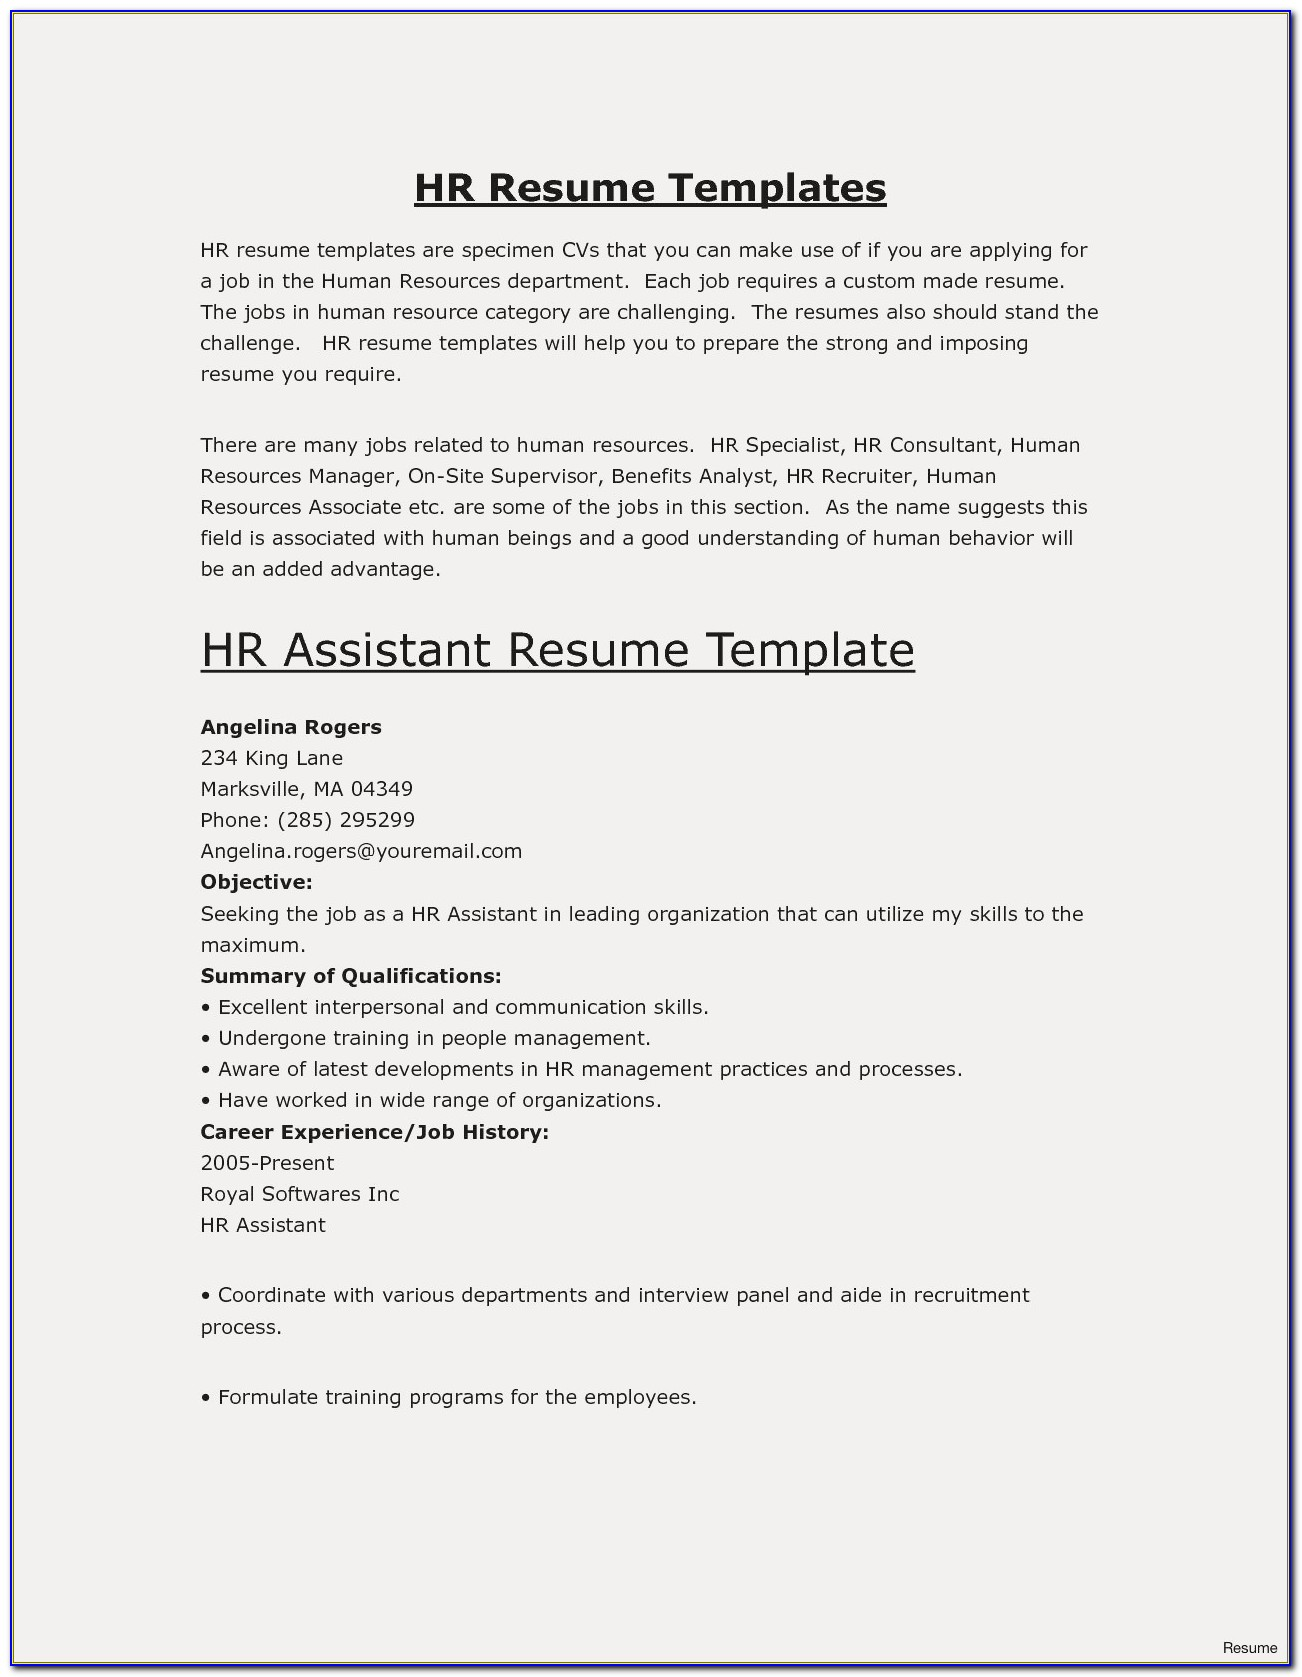 Resume Forms Example Preferred Resume Format Fresh New Pr Resume Template Elegant Professional Vincegray2014